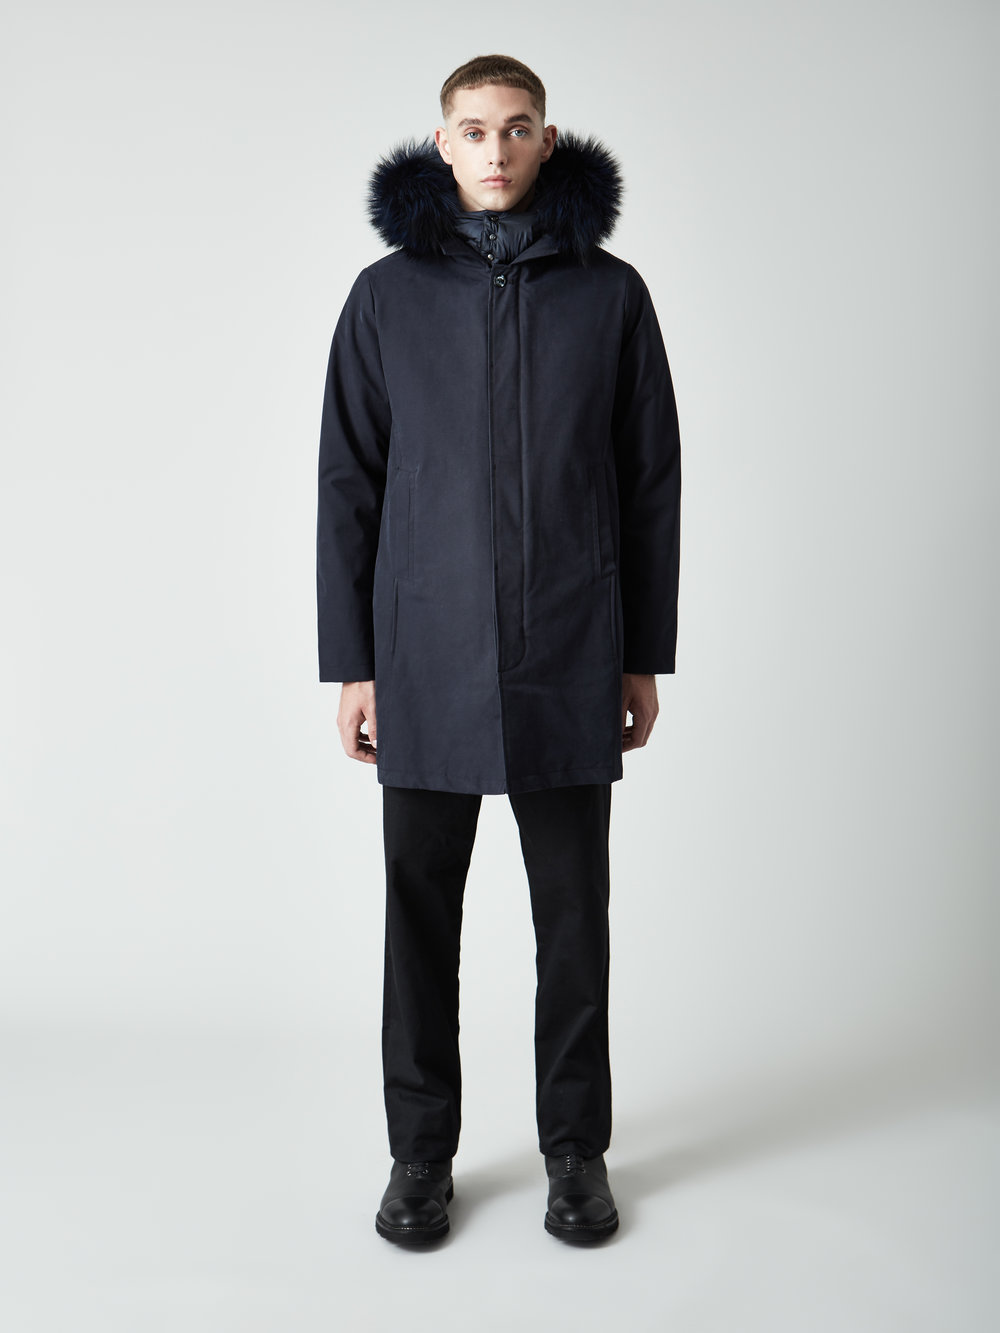 The Fur - Navy_BM_1.jpg